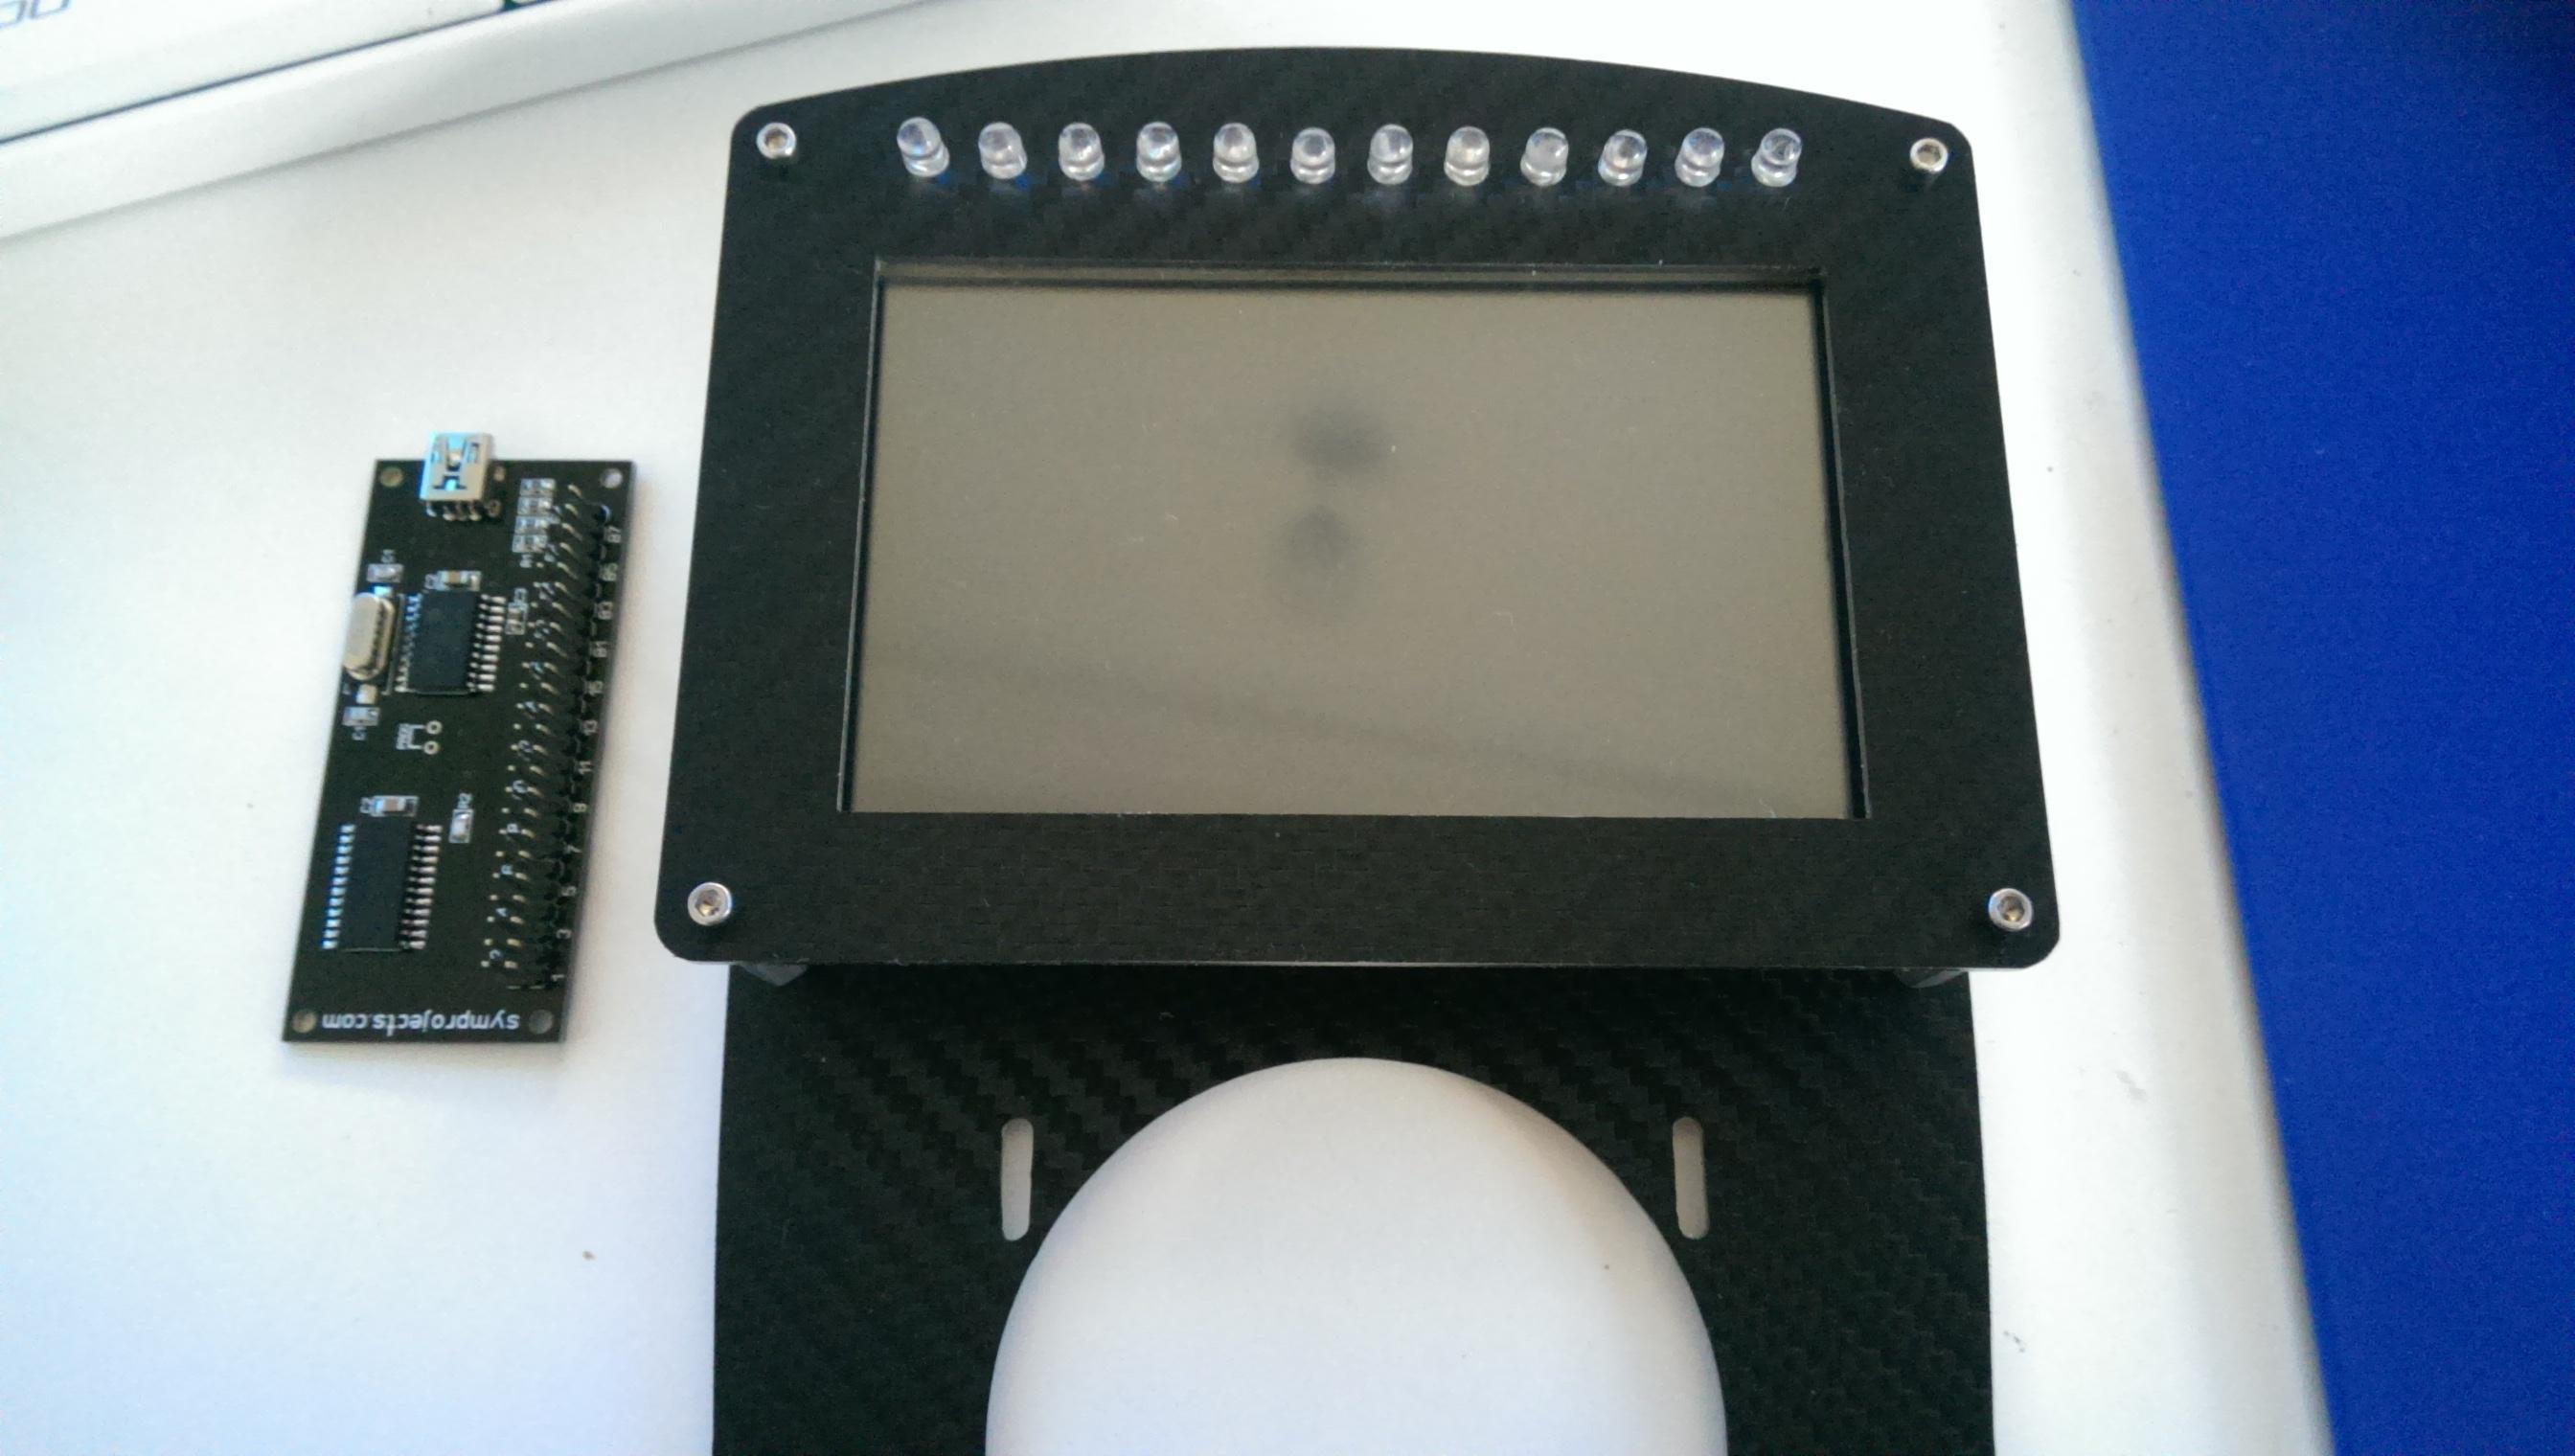 It's there a tutorial for setting up custom LCD display